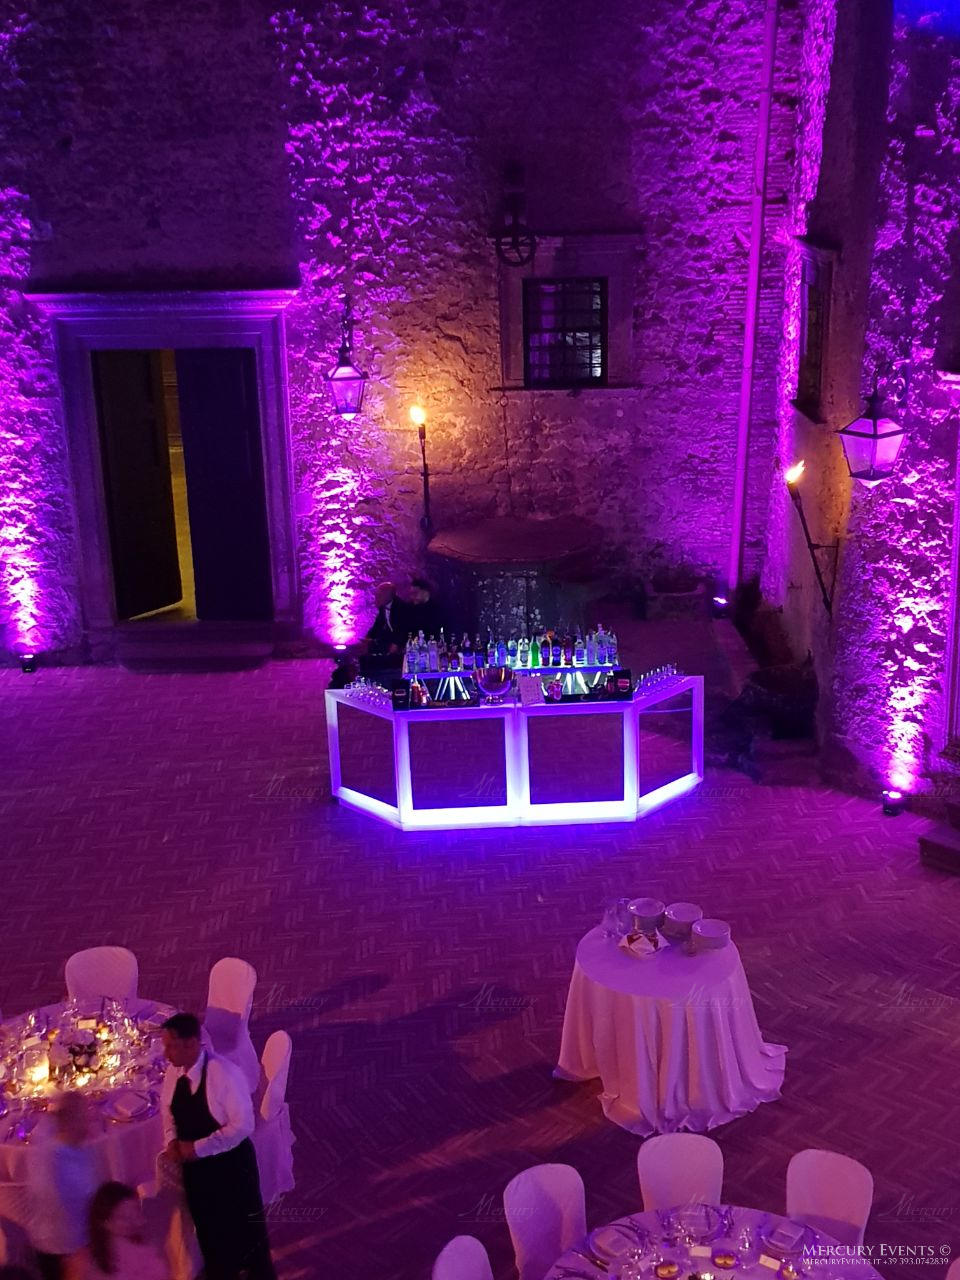 Wedding - Castello Odelschalchi di Bracciano - Mercury Events 3